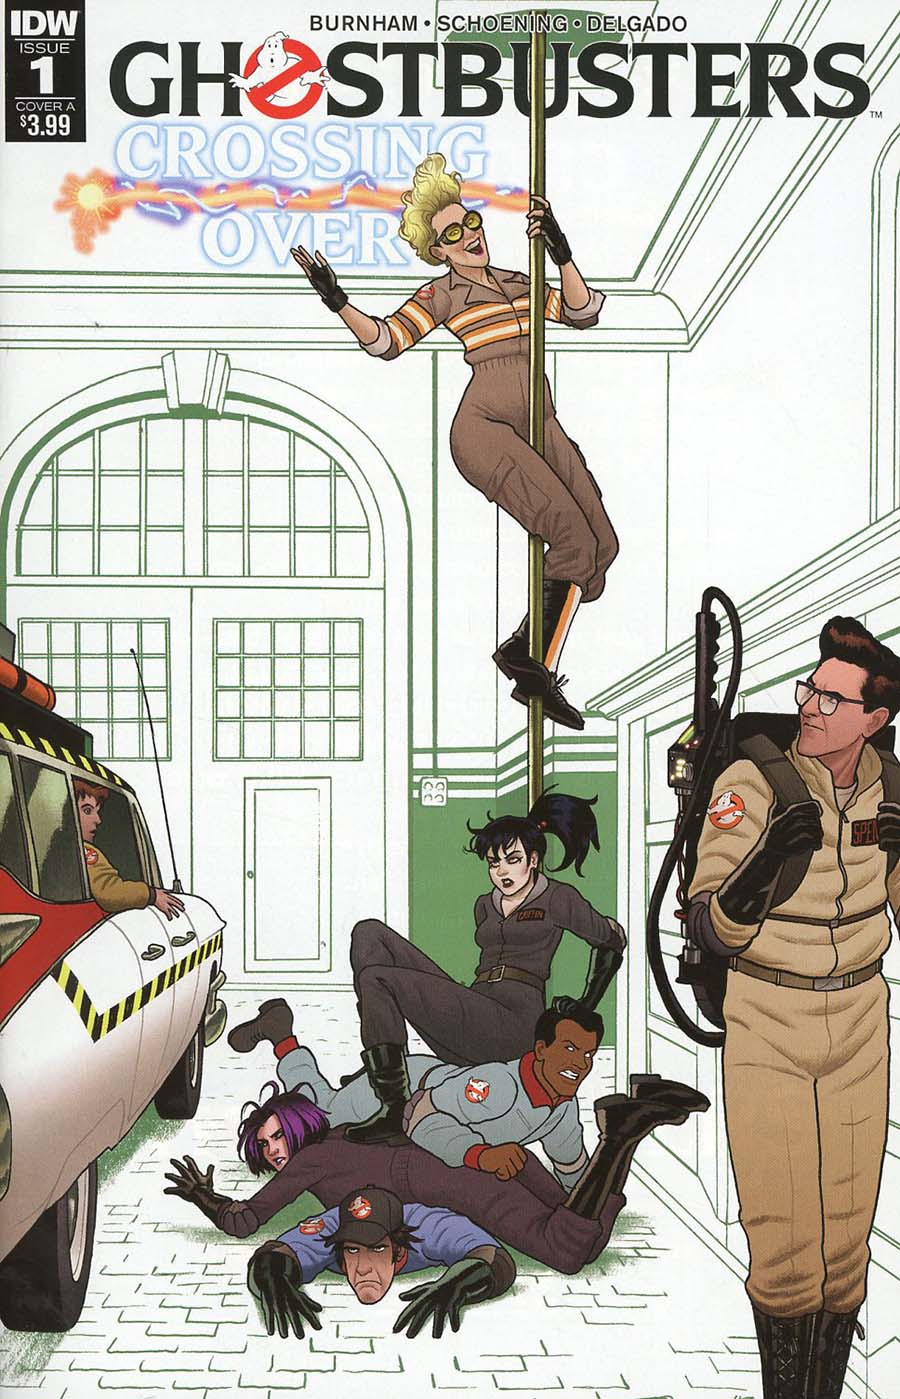 Ghostbusters Crossing Over #1 Cover A Regular Joe Quinones Cover